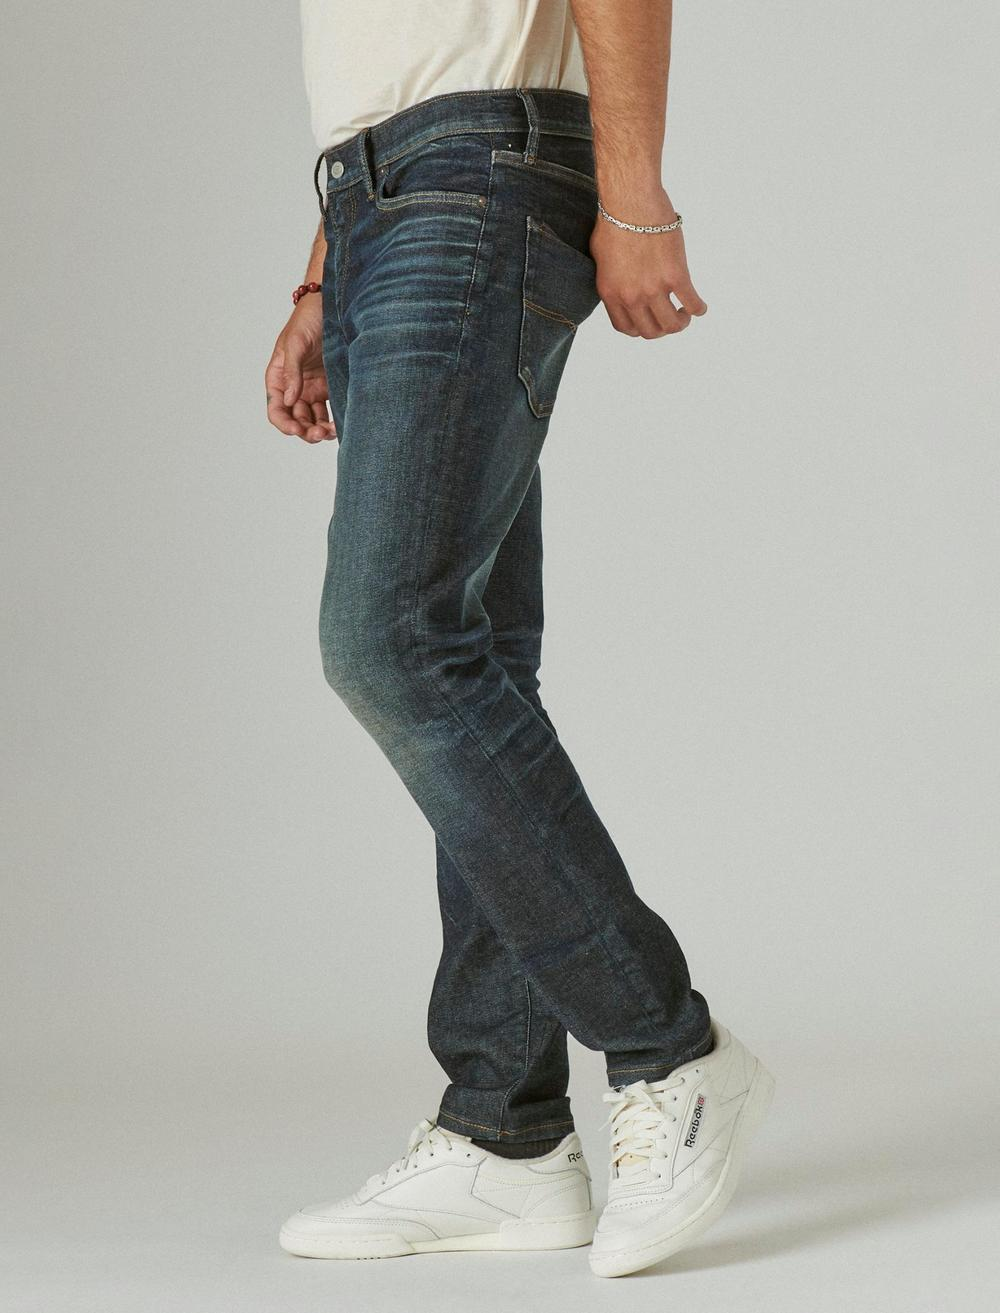 411 ATHLETIC TAPER ADVANCED STRETCH JEAN, image 5